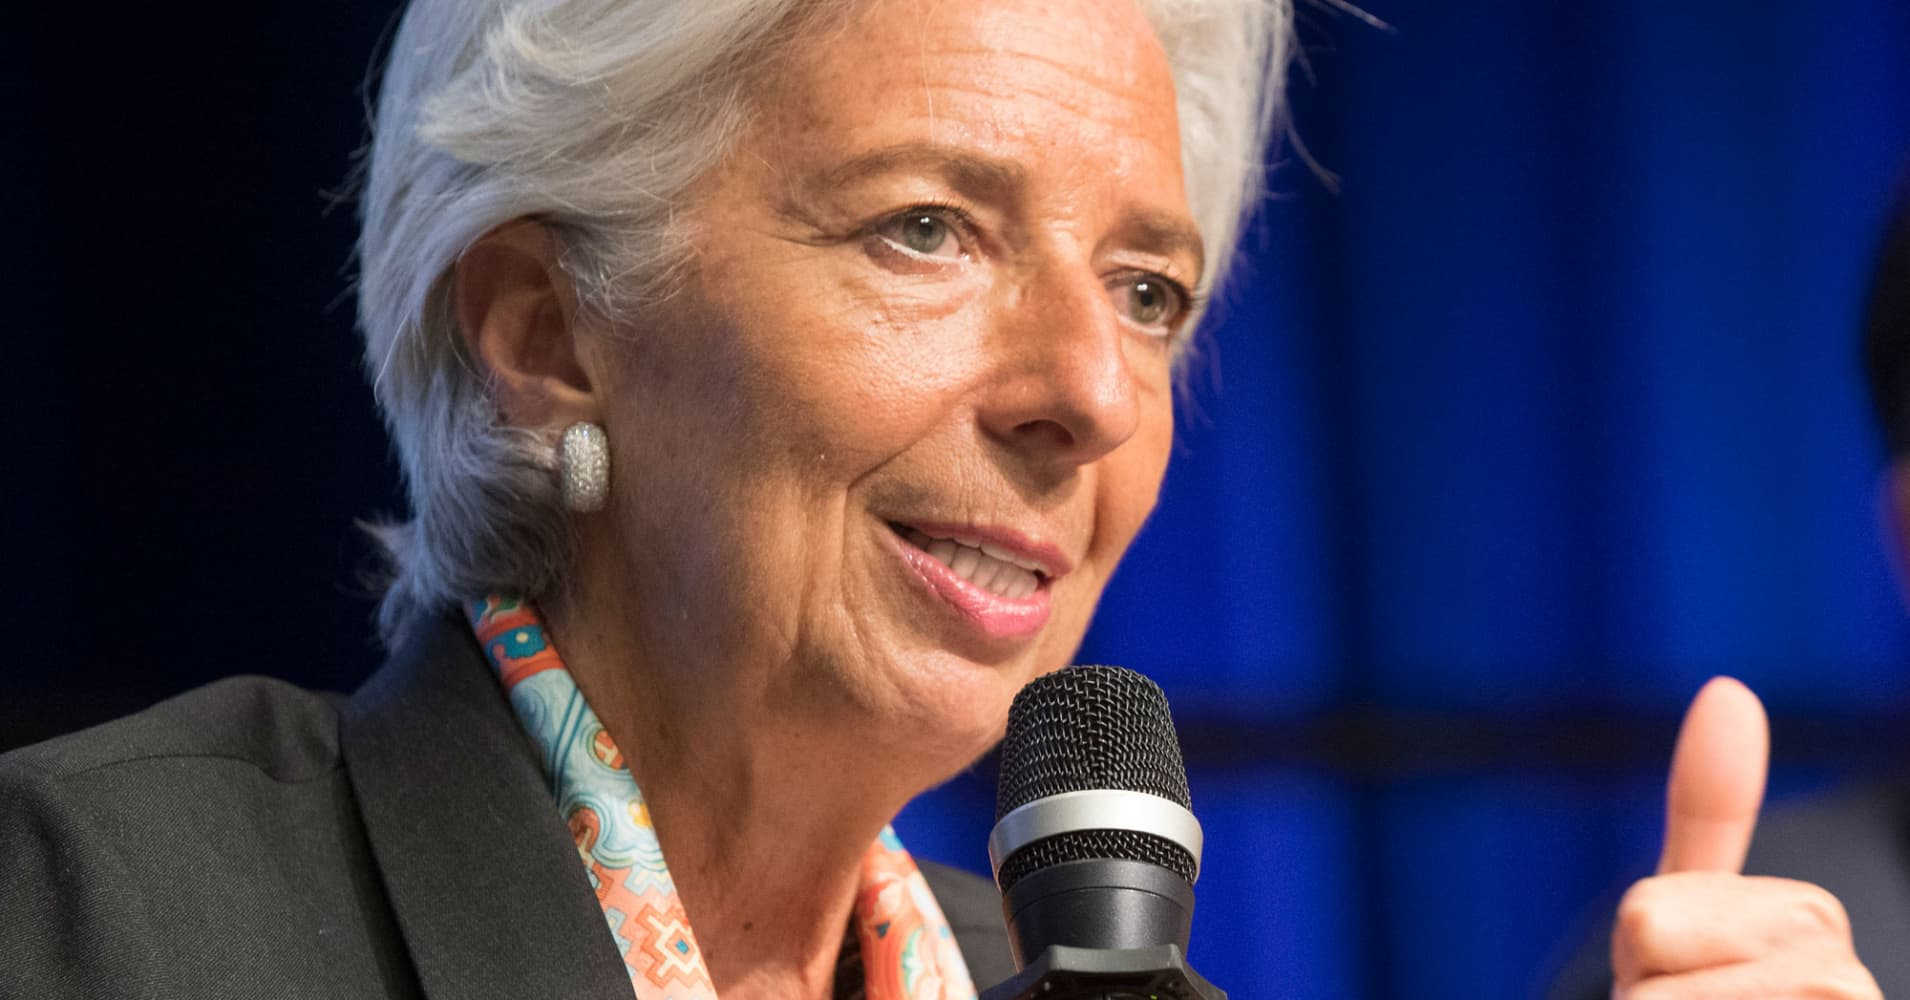 'We are About to See Massive Disruptions': IMF Chief on Digital Currency Future